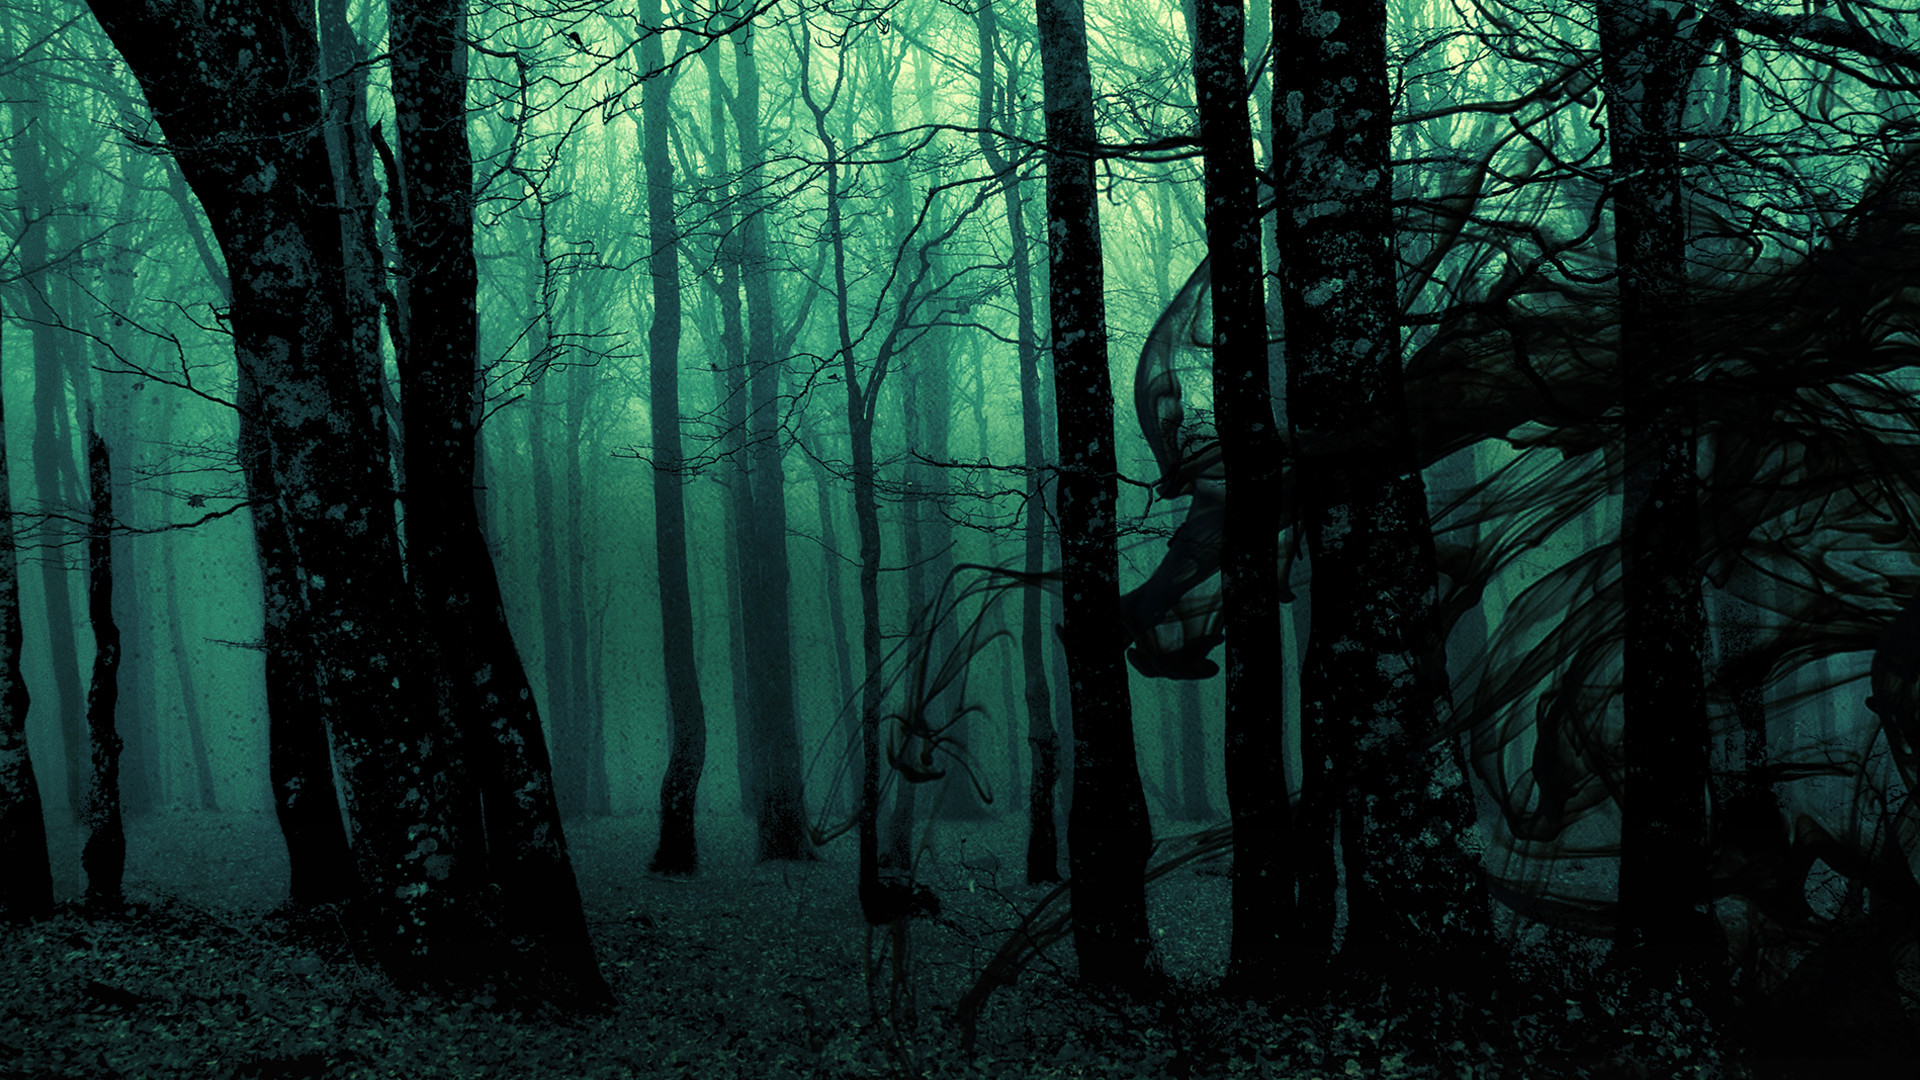 Best Collection of Dark Forest Desktop Backgrounds Wallpapers Pictures.Dark  Forest Backgrounds Pictures images for background images.